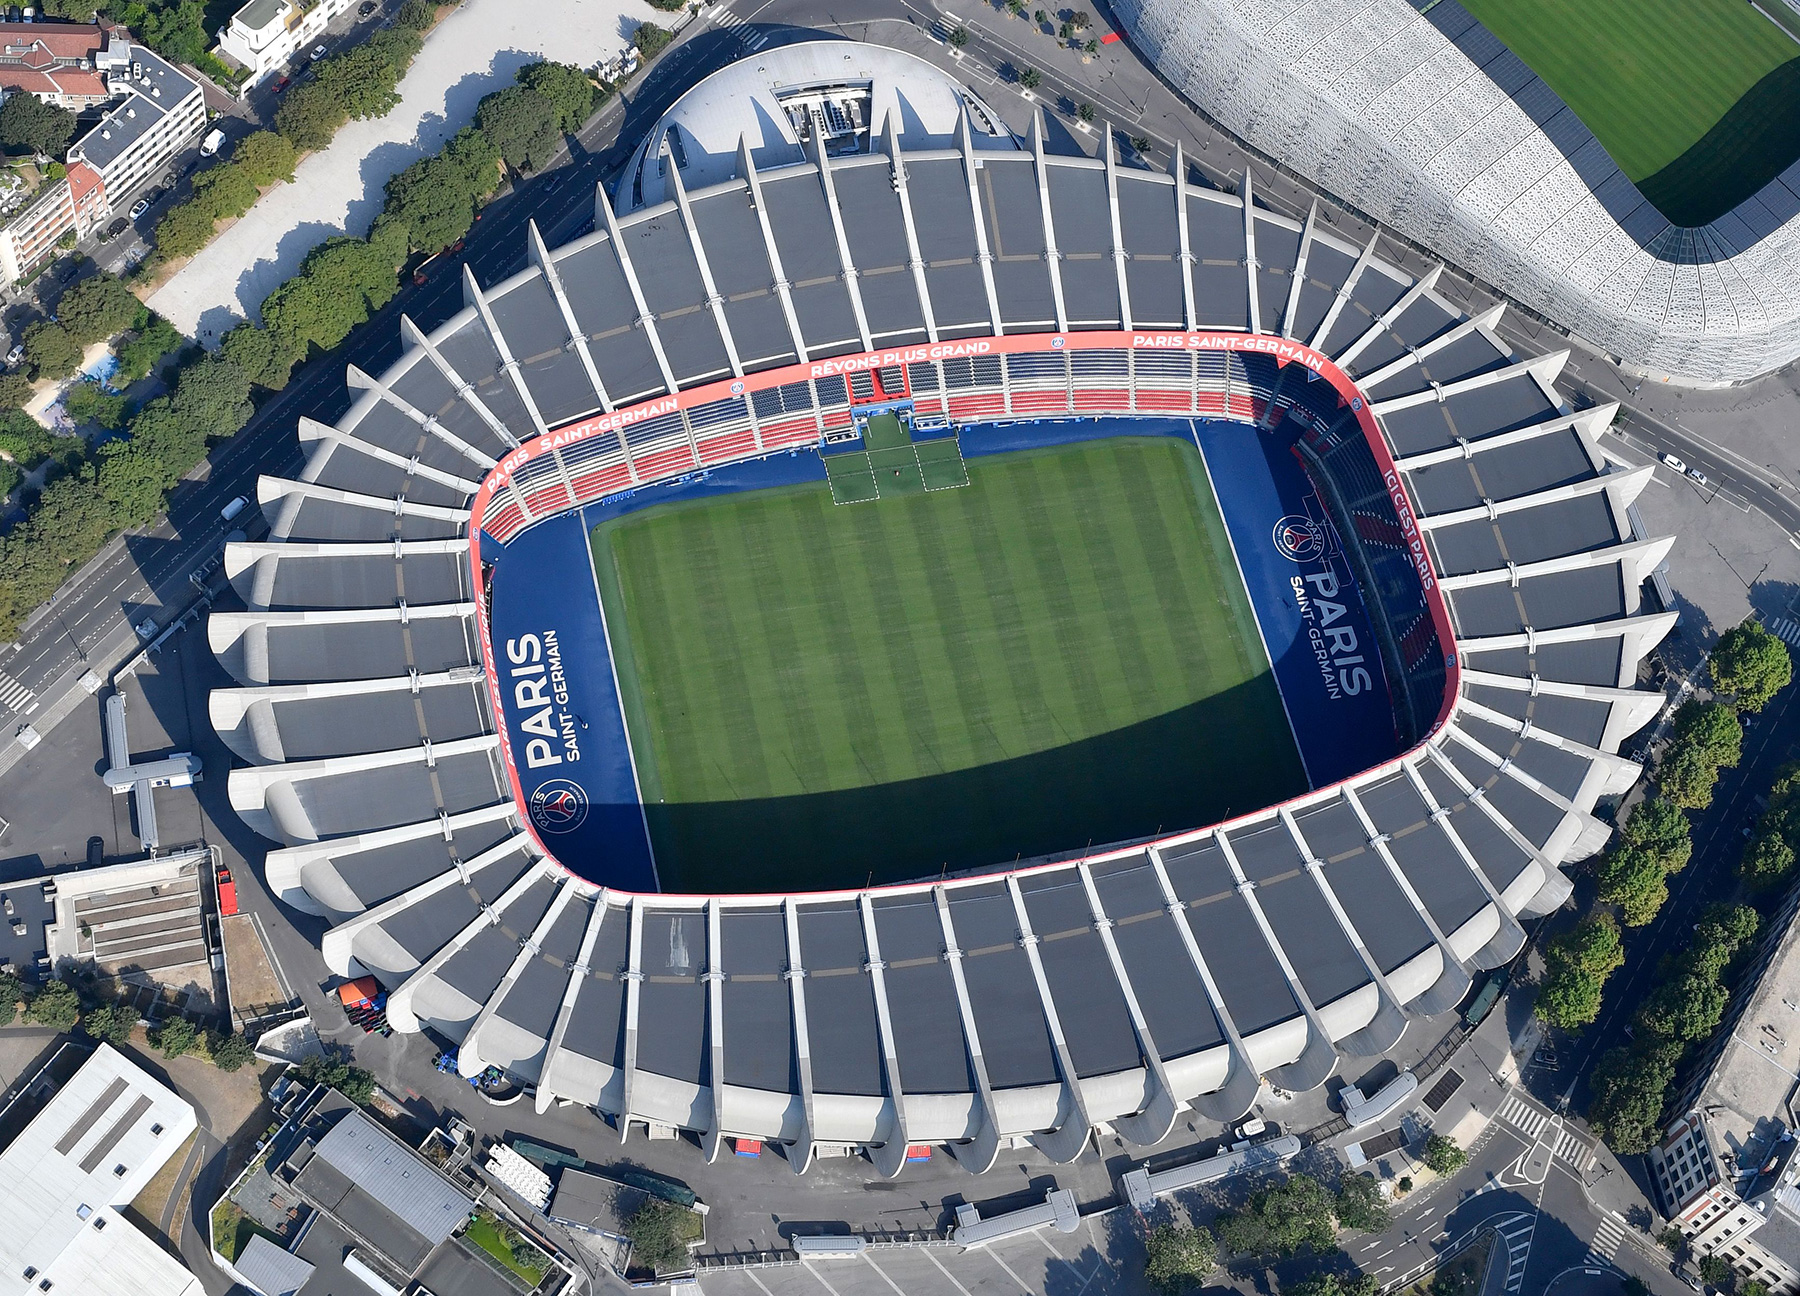 Architect of the Iconic Parc des Princes Has Died - PSG Talk